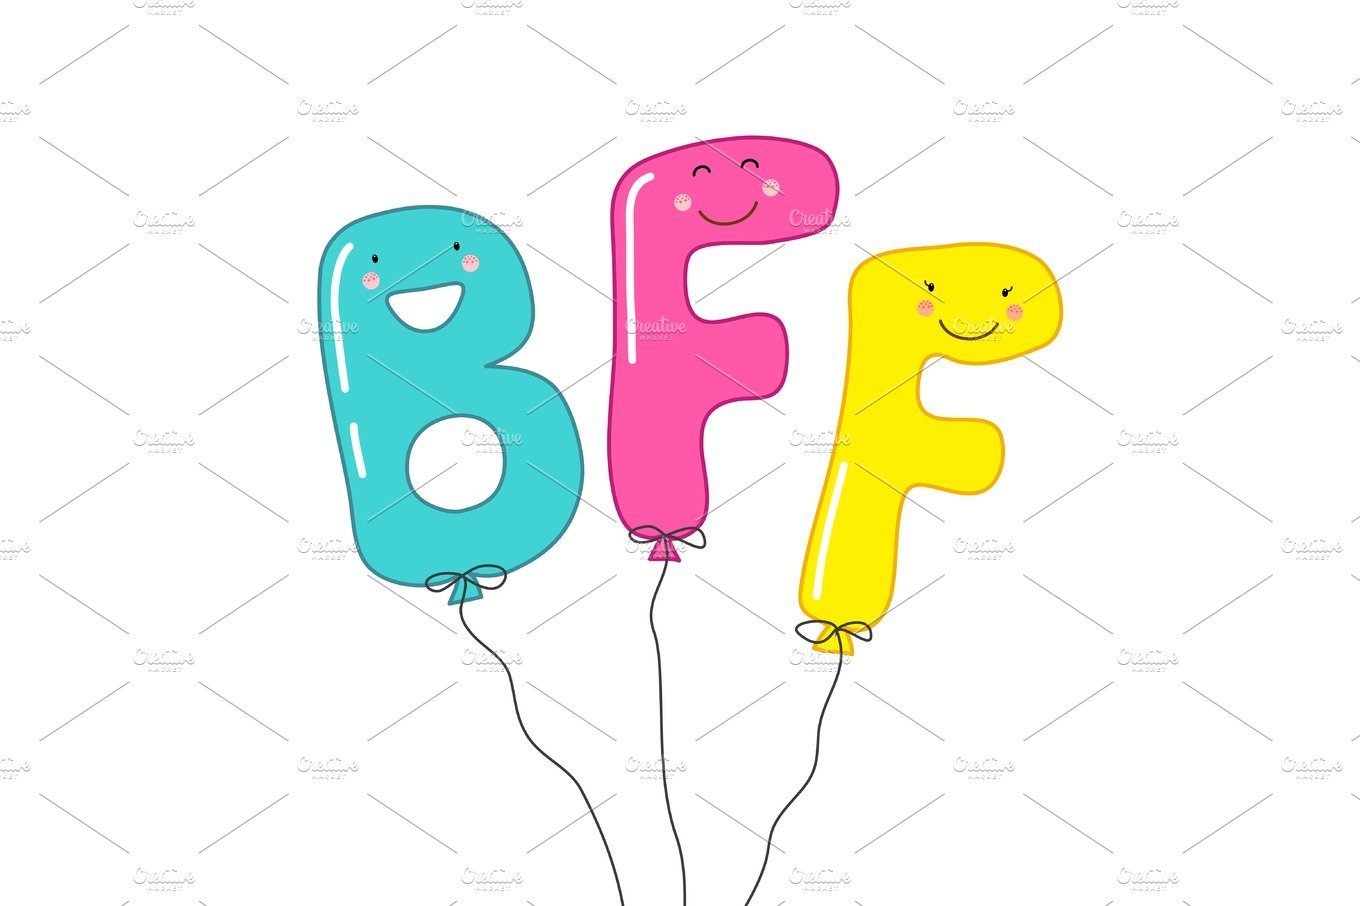 3 Letter Cartoon Characters : Cute smiling cartoon characters of letters bff best